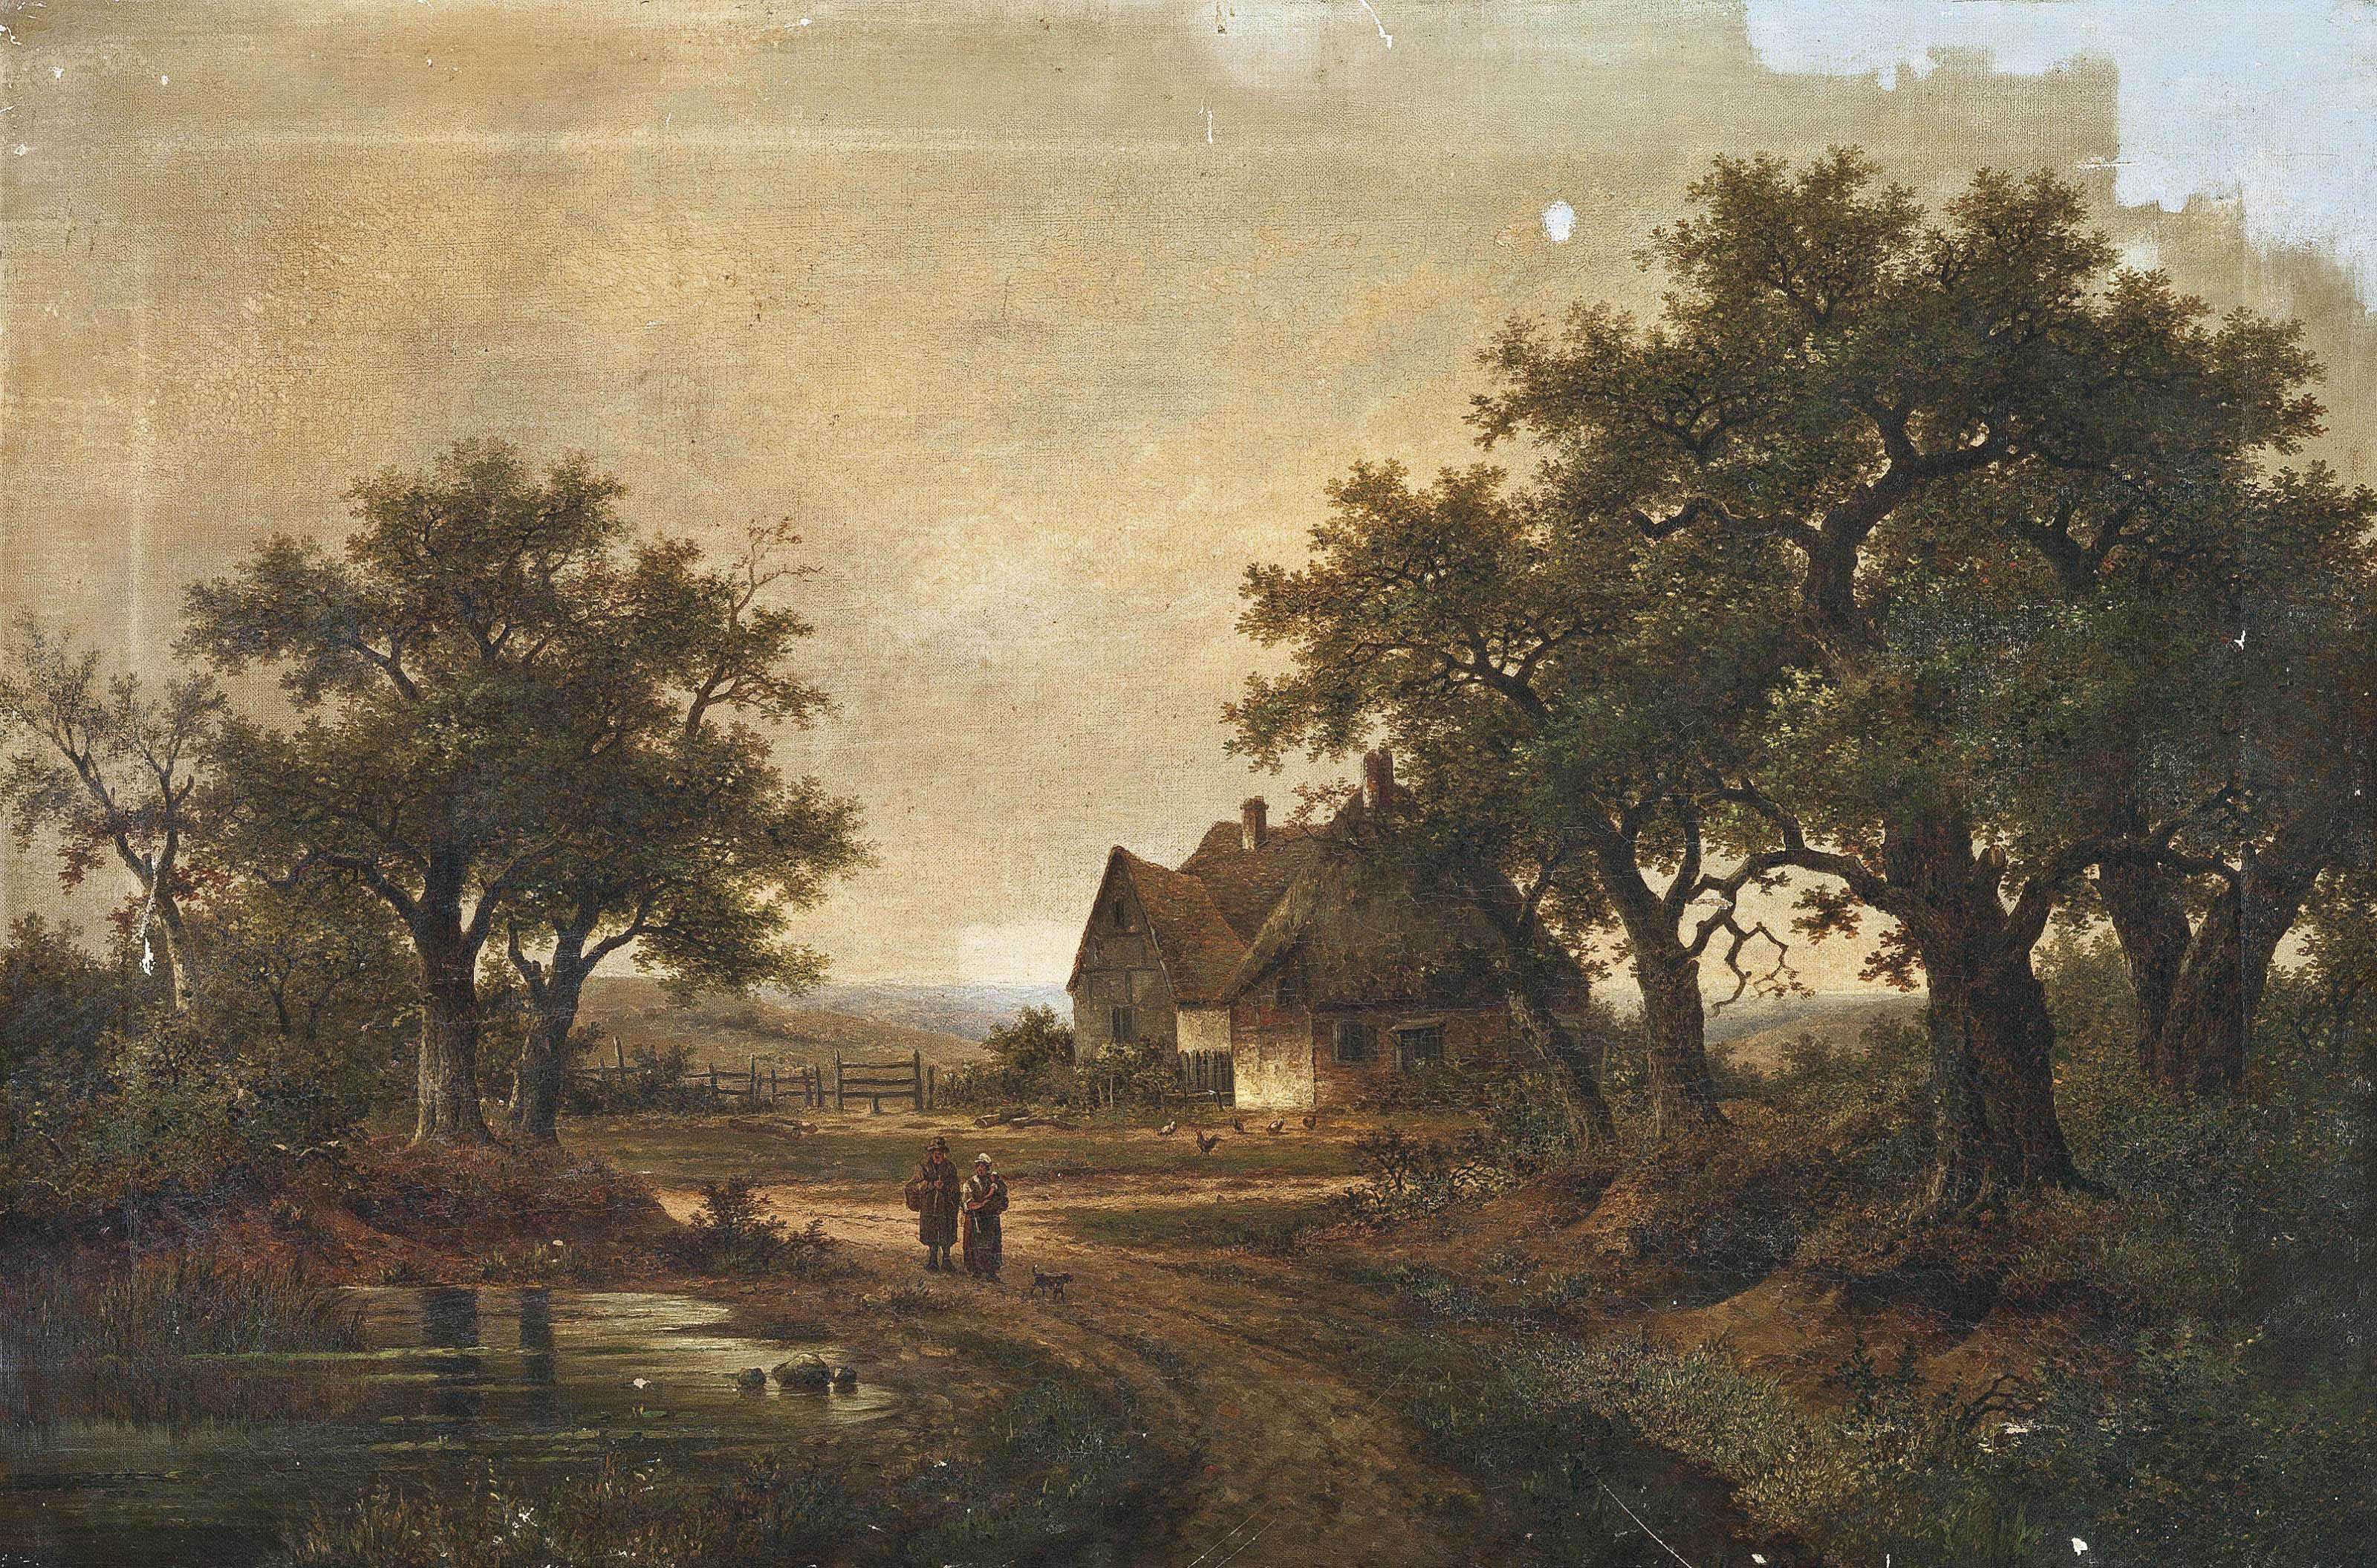 Peasants walking along a country lane